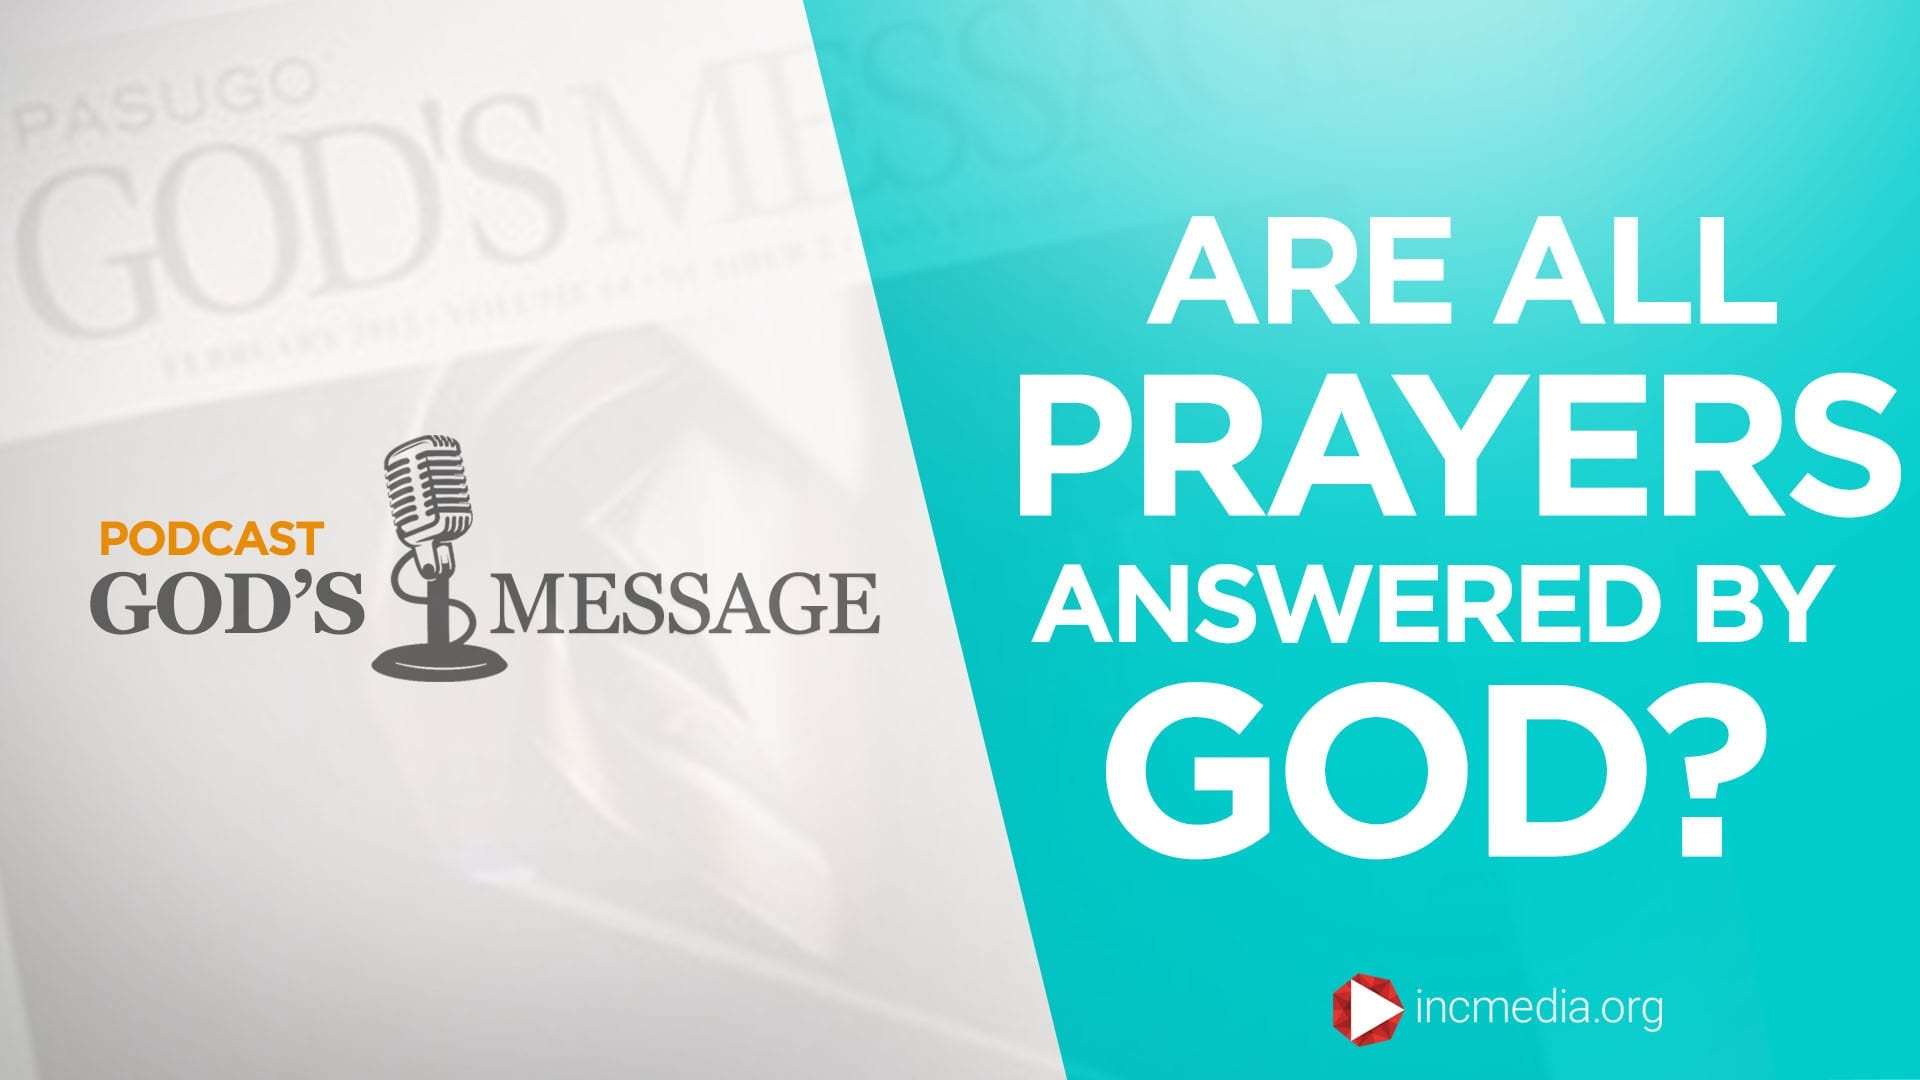 Are All Prayers Answered By God?